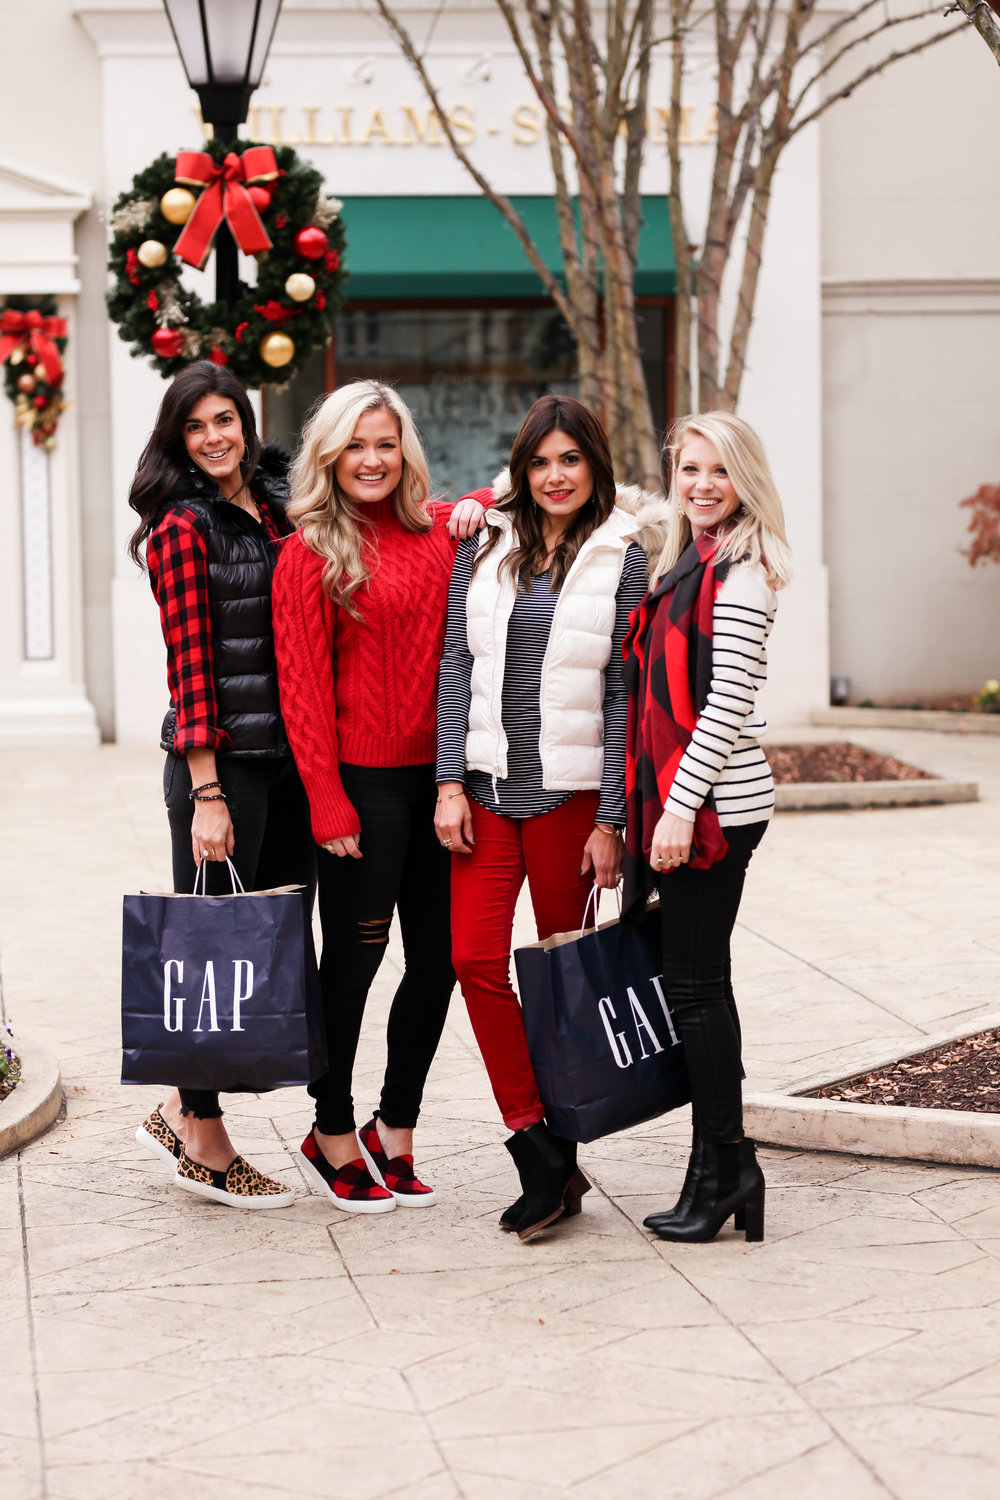 GAP-Holiday-Style-2017-Lauren-Schwaiger-Fashion-Blog.jpg